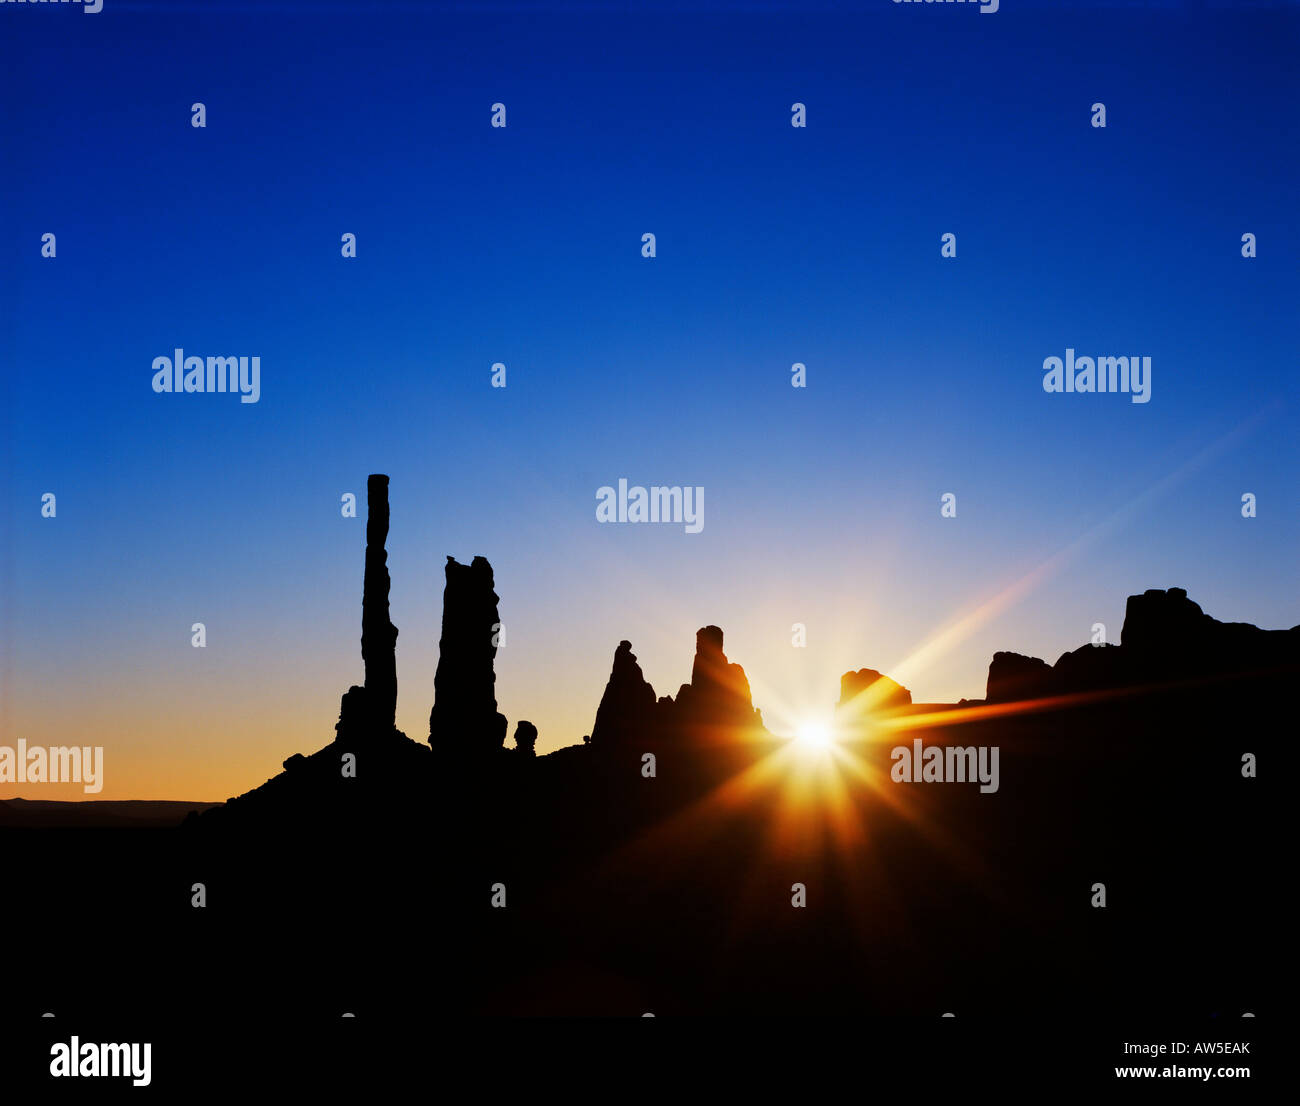 Yei Bi Chei Rocks Totem Pole Sand Dunes Monument Valley Navajo Tribal Park Arizona - Stock Image